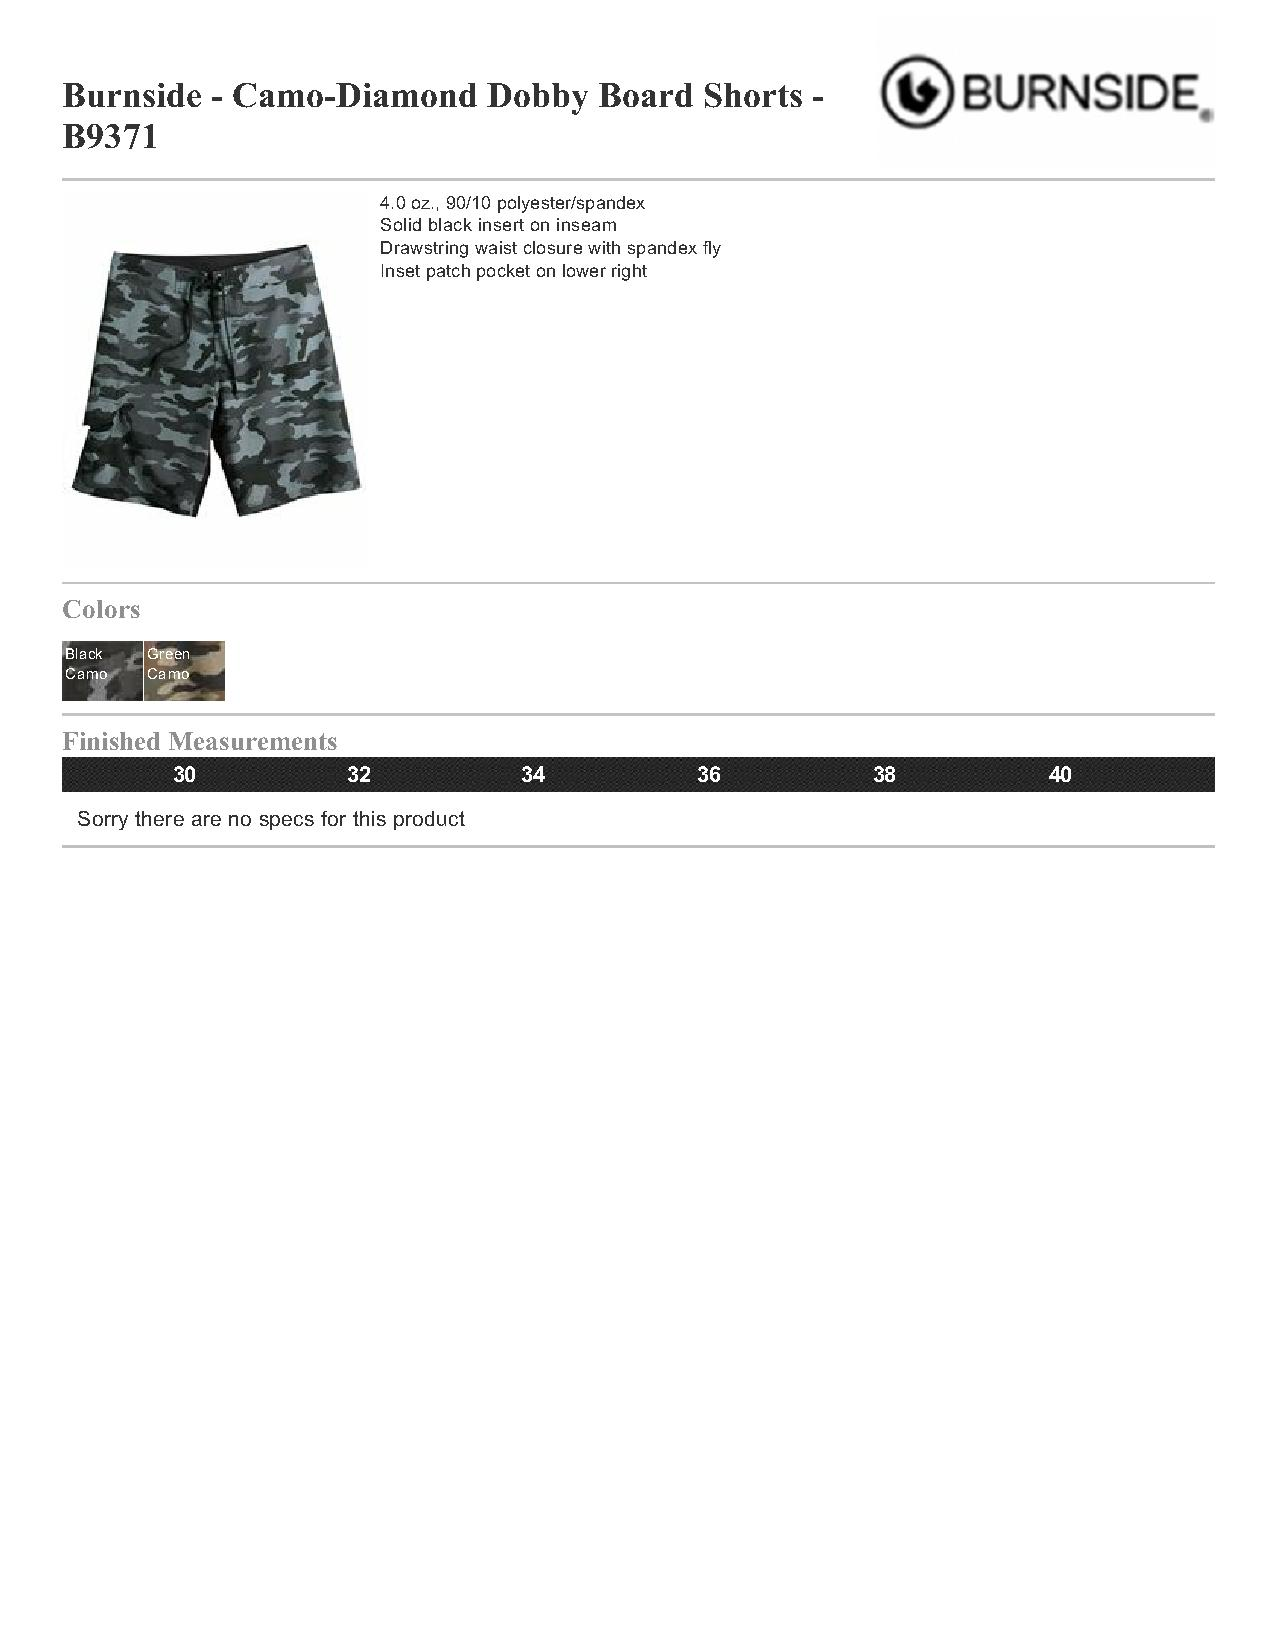 f9f59f2f2b Burnside Camo-Diamond Dobby Board Shorts - B9371 $19.44 - Men's Shorts